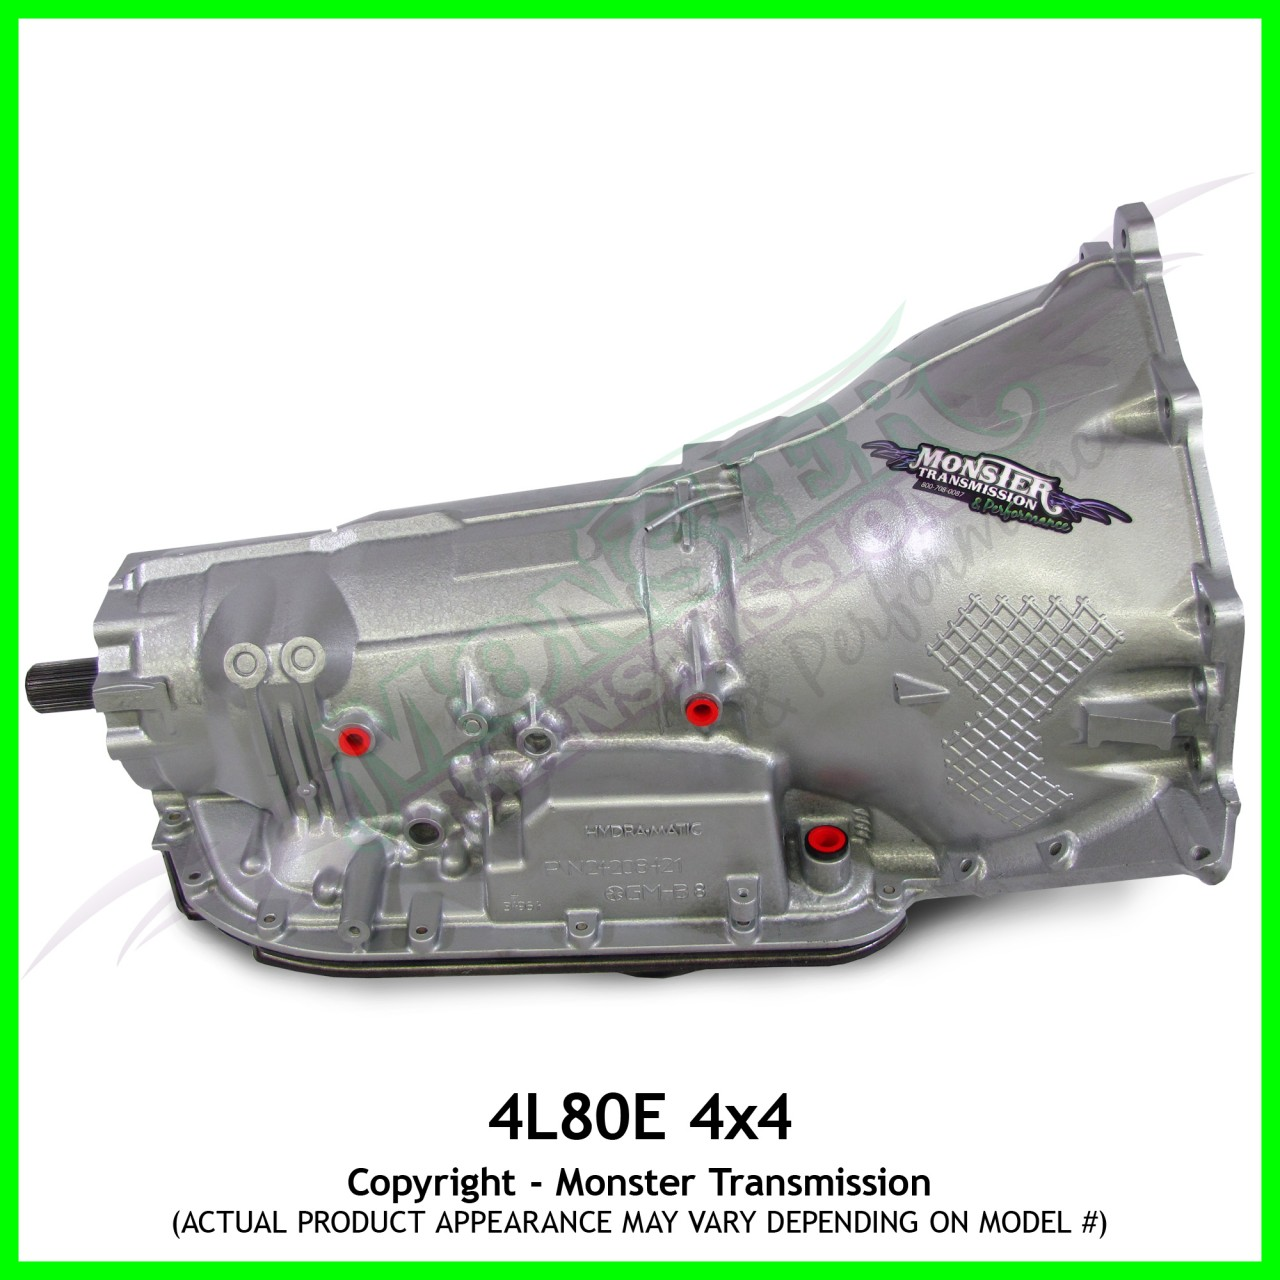 hight resolution of 4l80e transmission 4wd 4l80e 4x4 4l80 e 4l80 heavy duty 4l80e rebuild 4l80e monster 4l80e transmission 4l80e free shipping